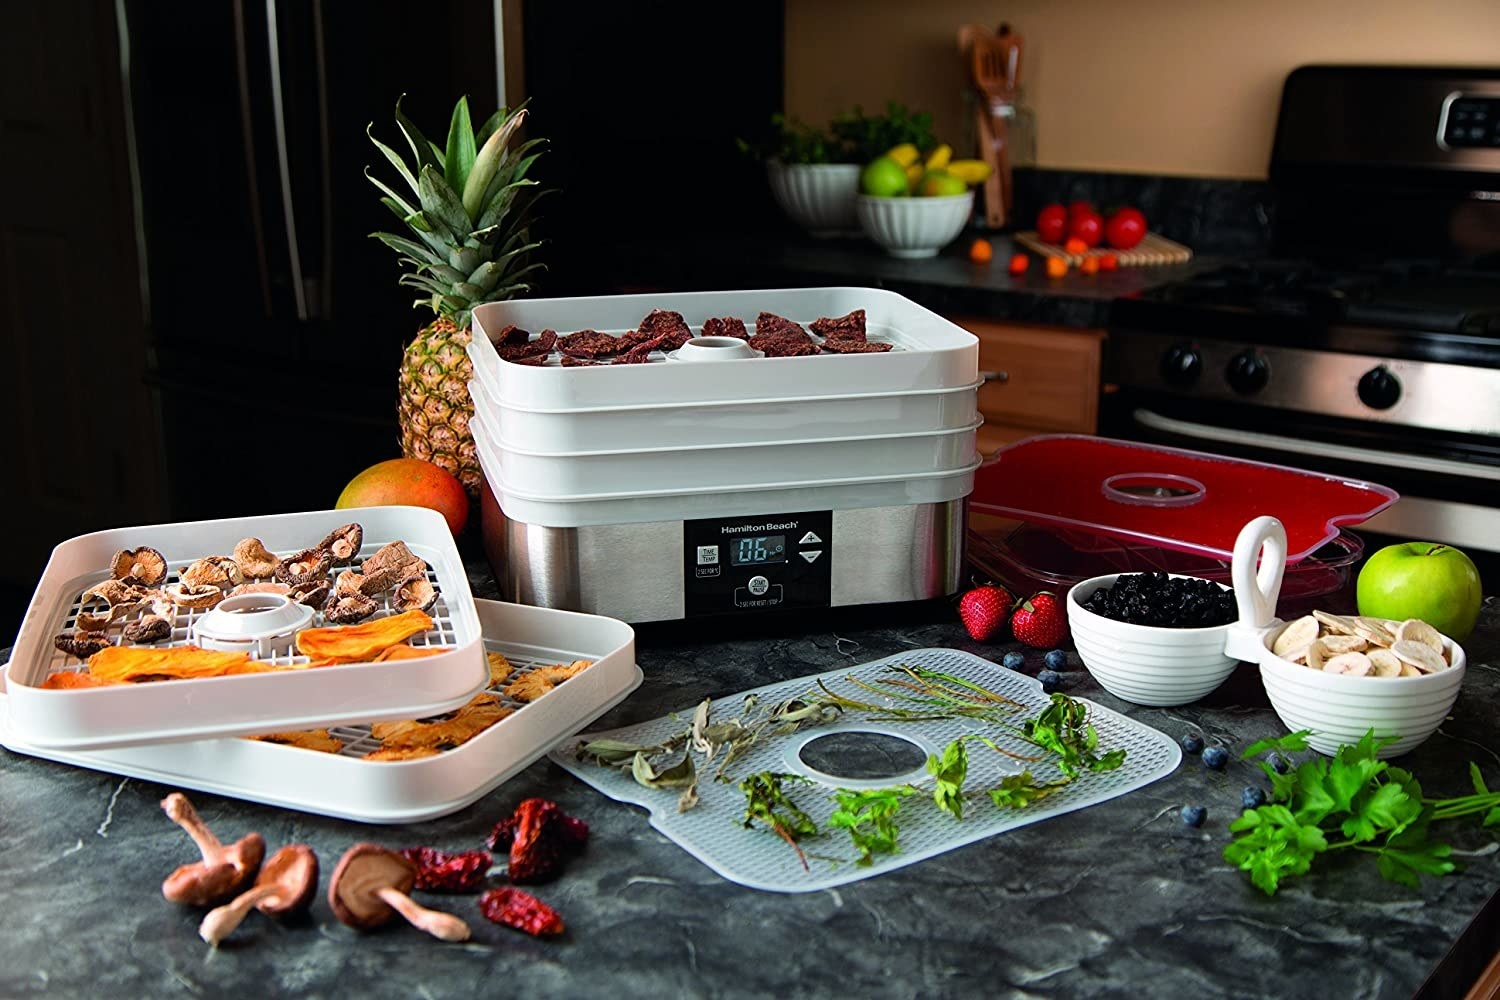 the dehydrator surrounded by dried fruit and veggies